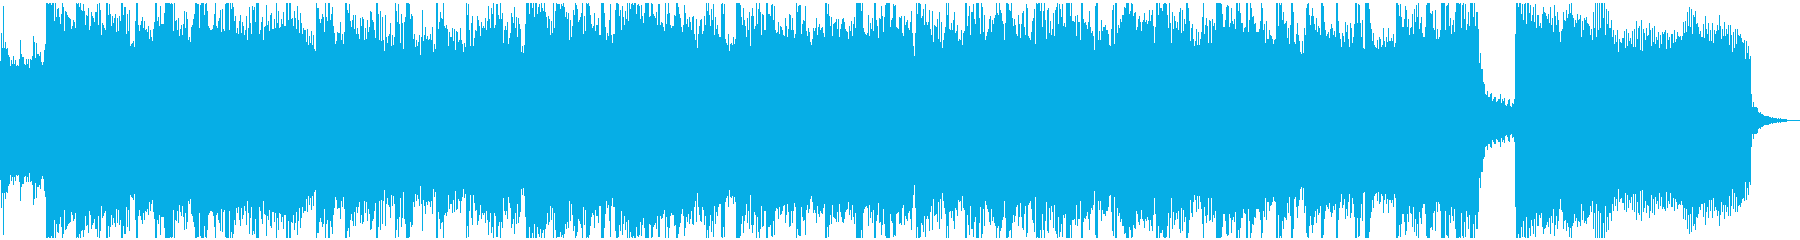 Fight To Live 30 sec's reproduced waveform